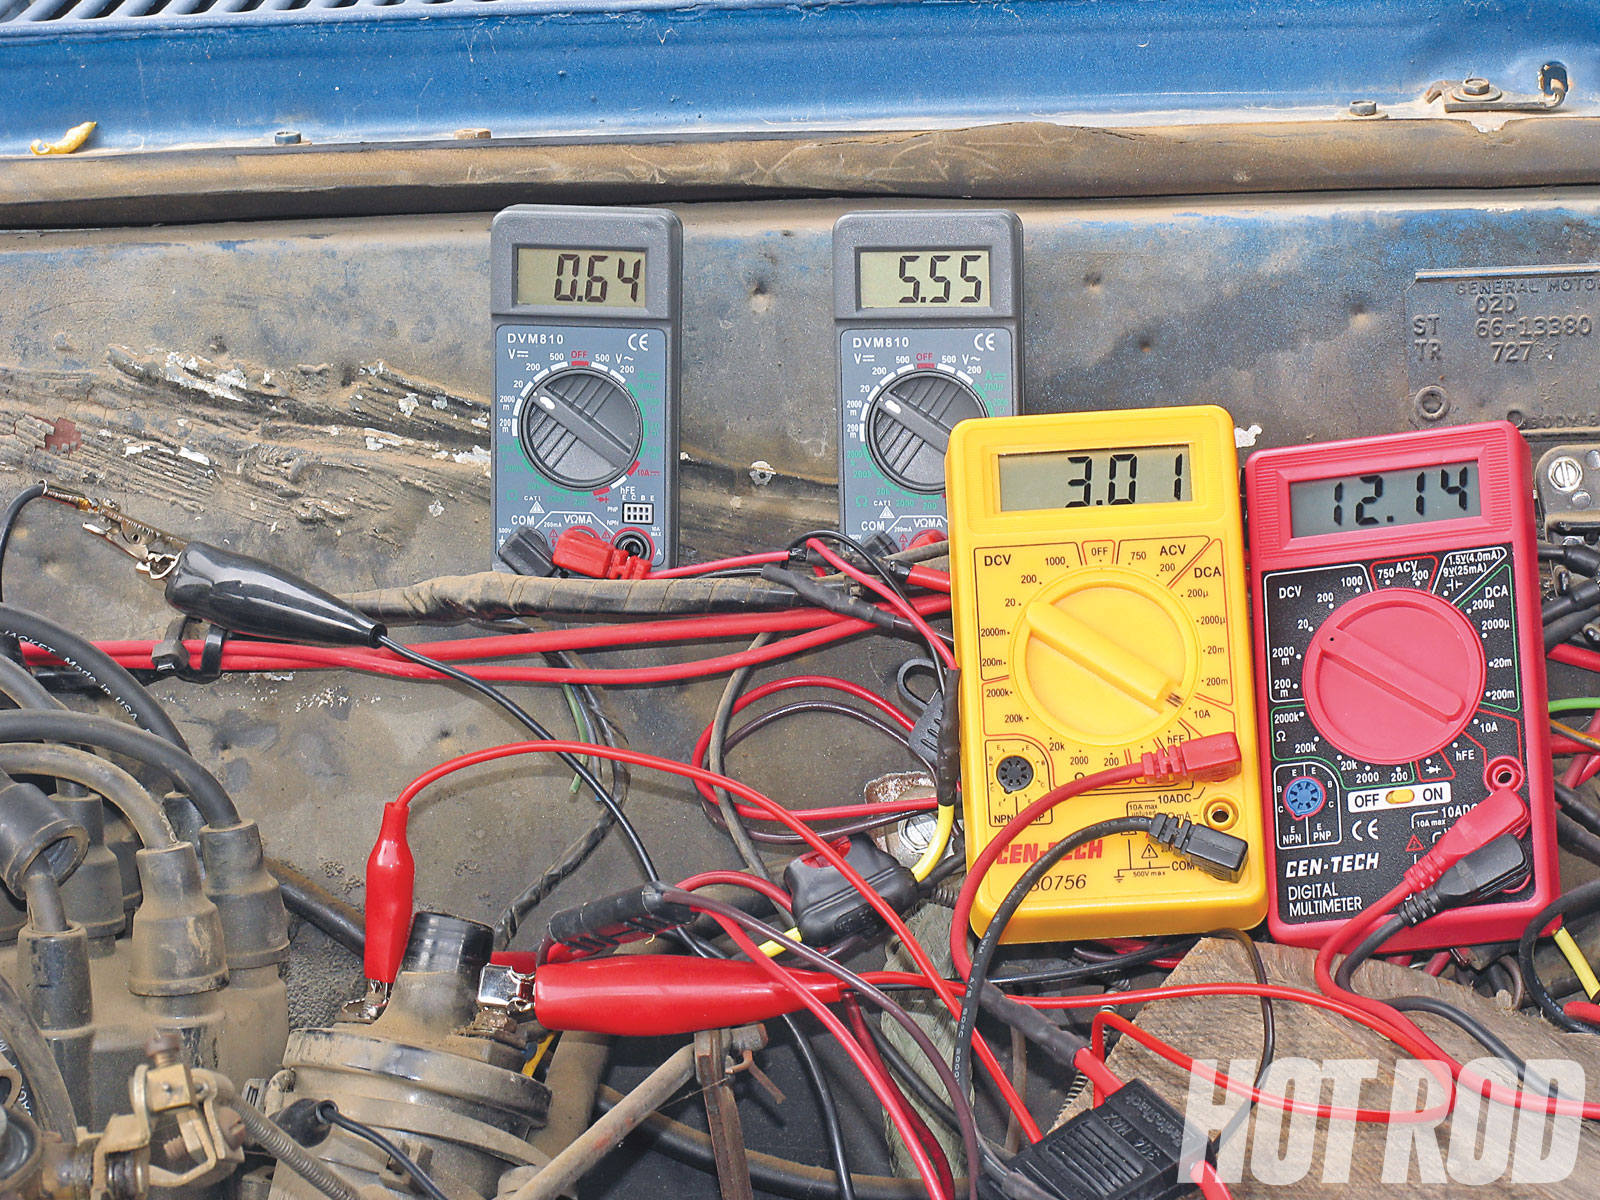 hight resolution of hrdp 1104 03 o gm muscle car tach voltage requirements battery voltage